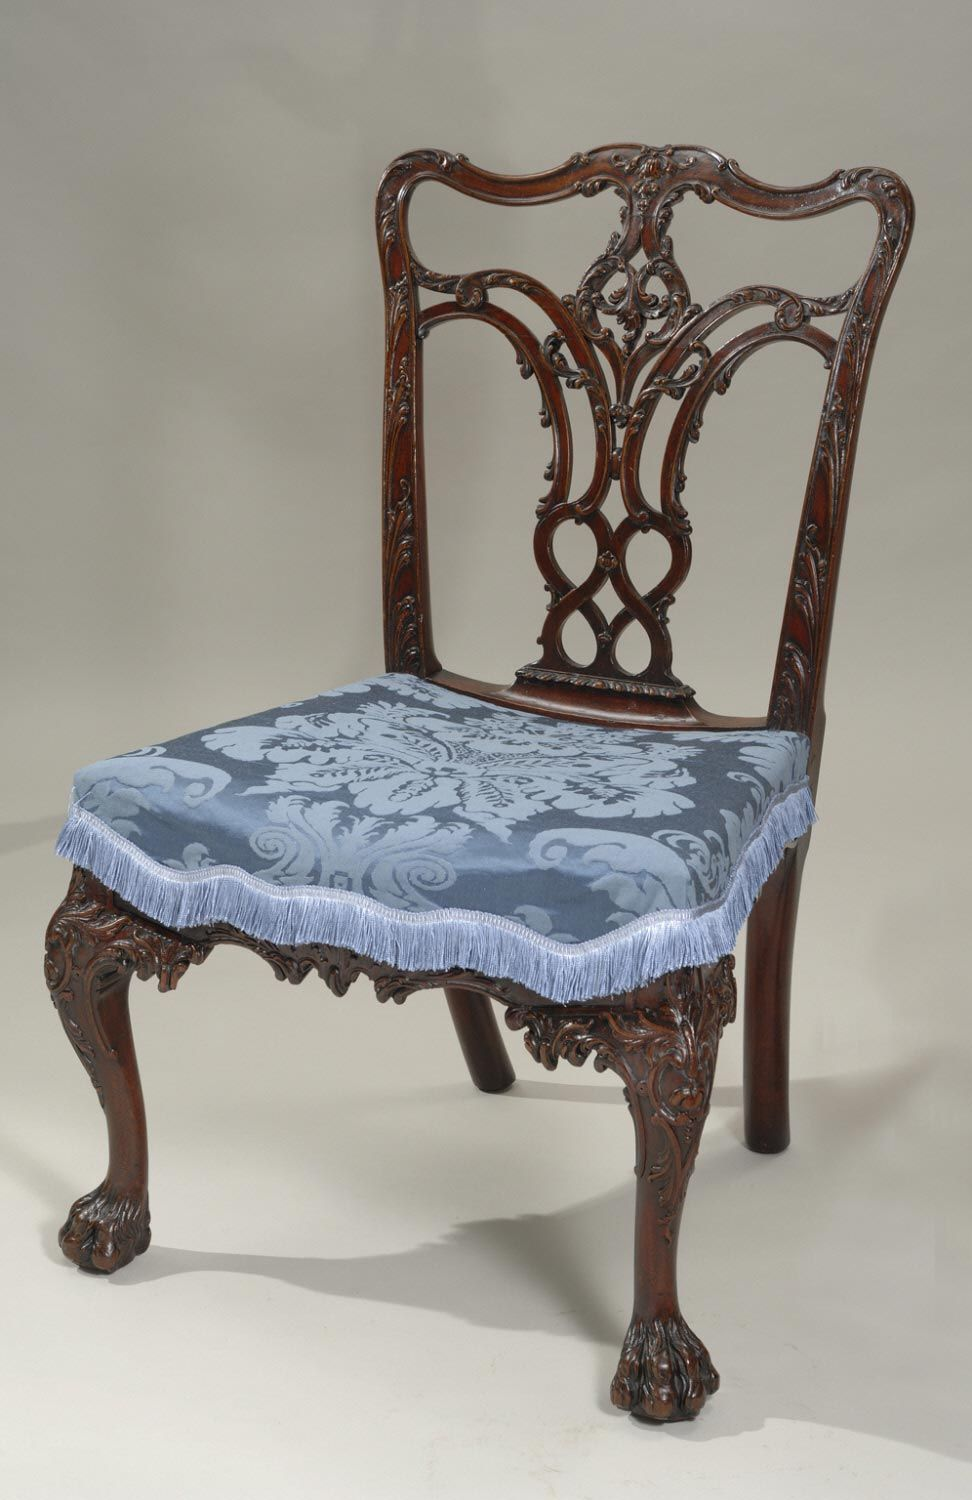 Wonderful Early American Furniture